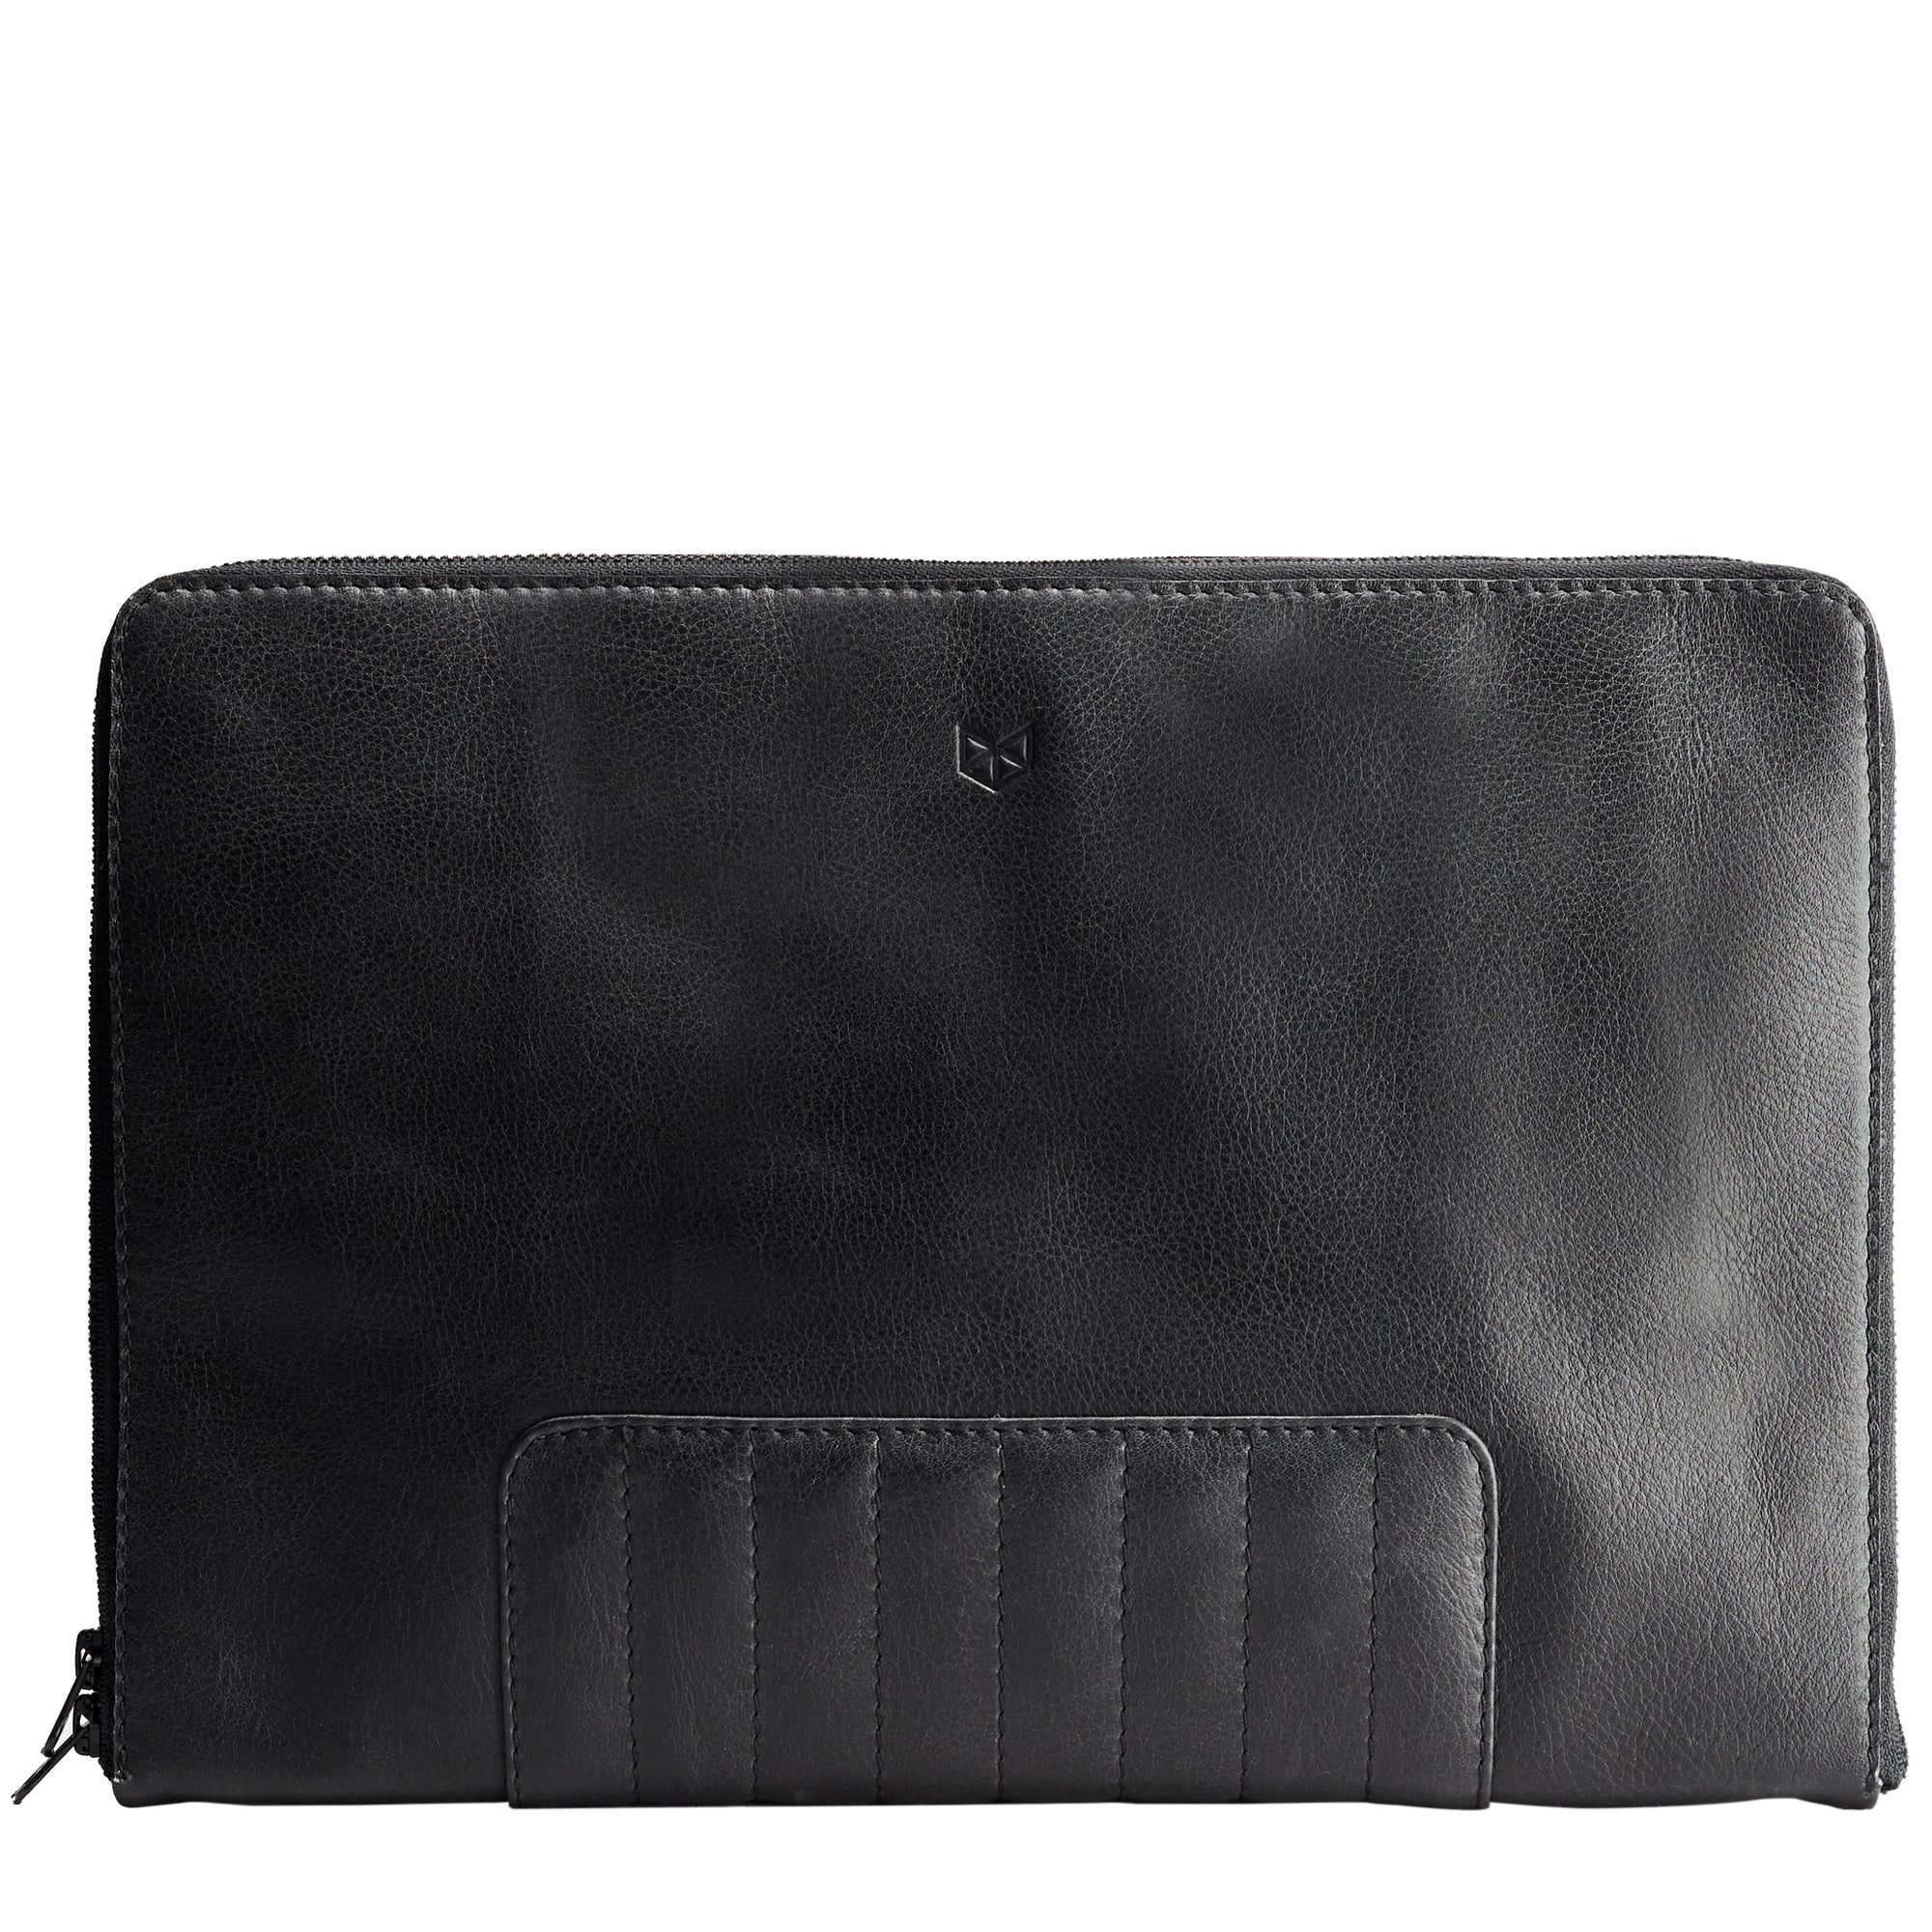 Cover. Black laptop portfolio. Business document organizer for men.